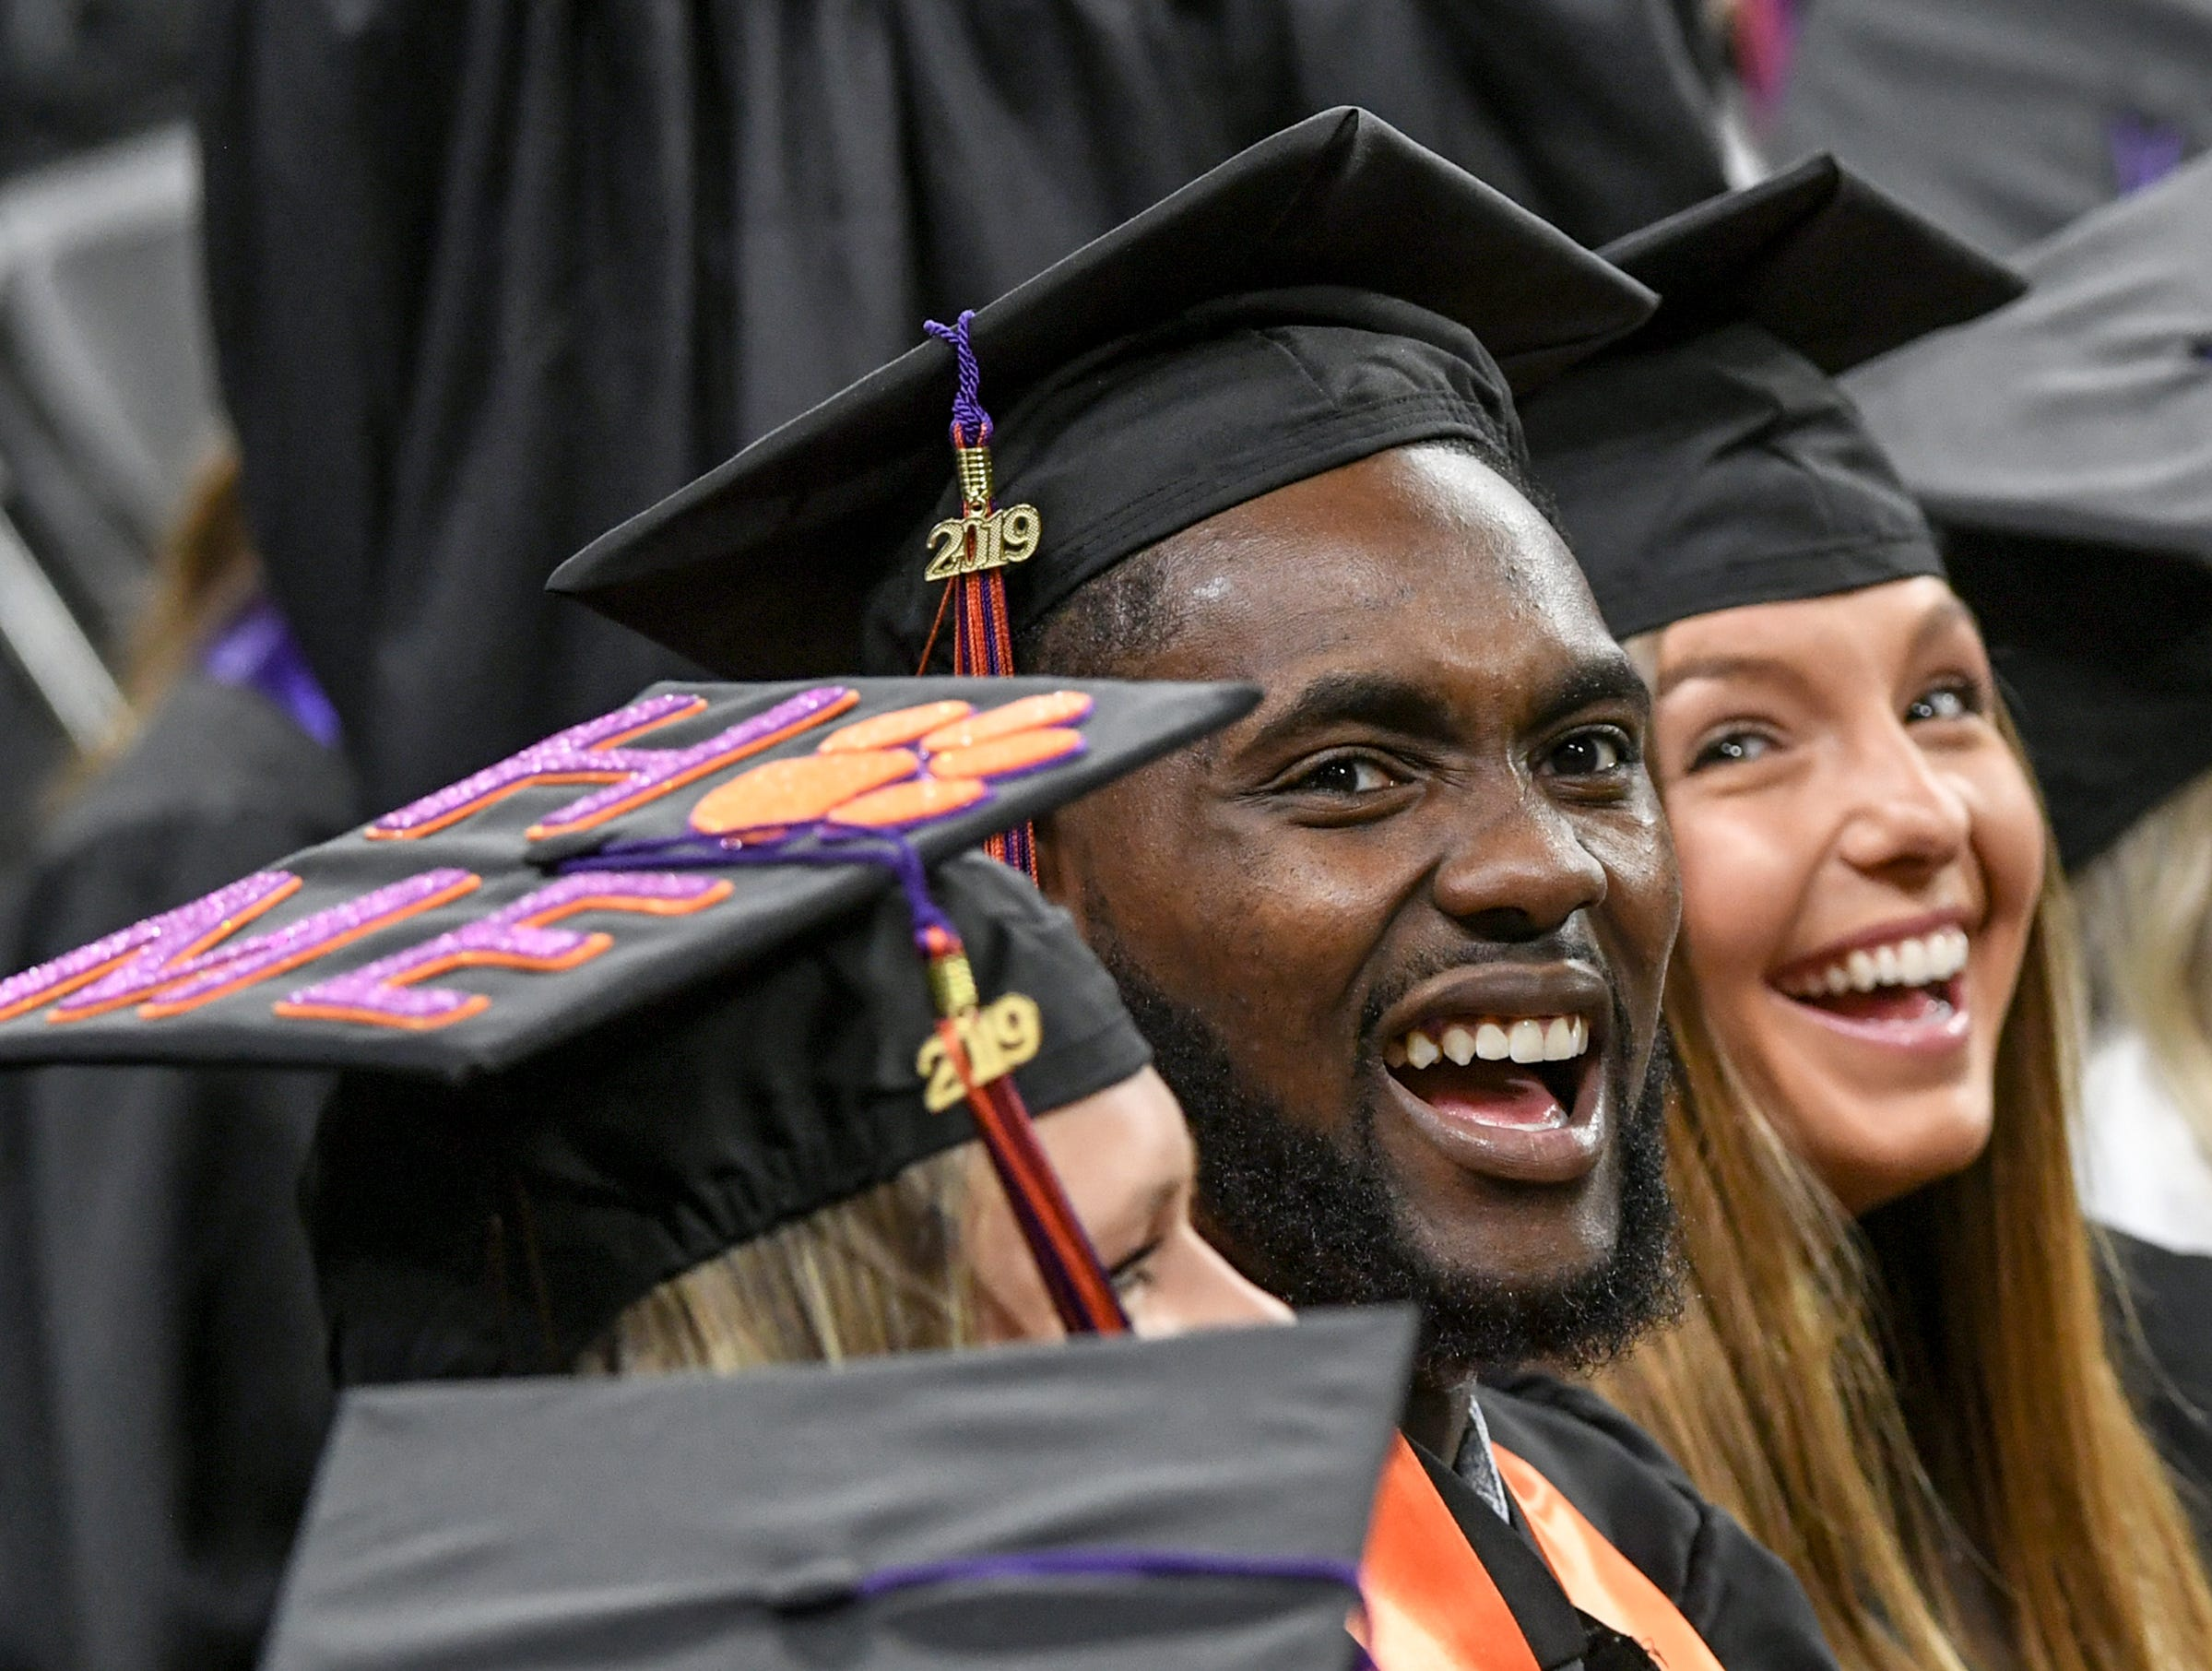 Elijah Thomas, a former men's basketball player who earned a bachelor of science in parks, recreation, tourism, management smiles during Clemson University commencement ceremonies in Littlejohn Coliseum in Clemson Friday, May 10, 2019.